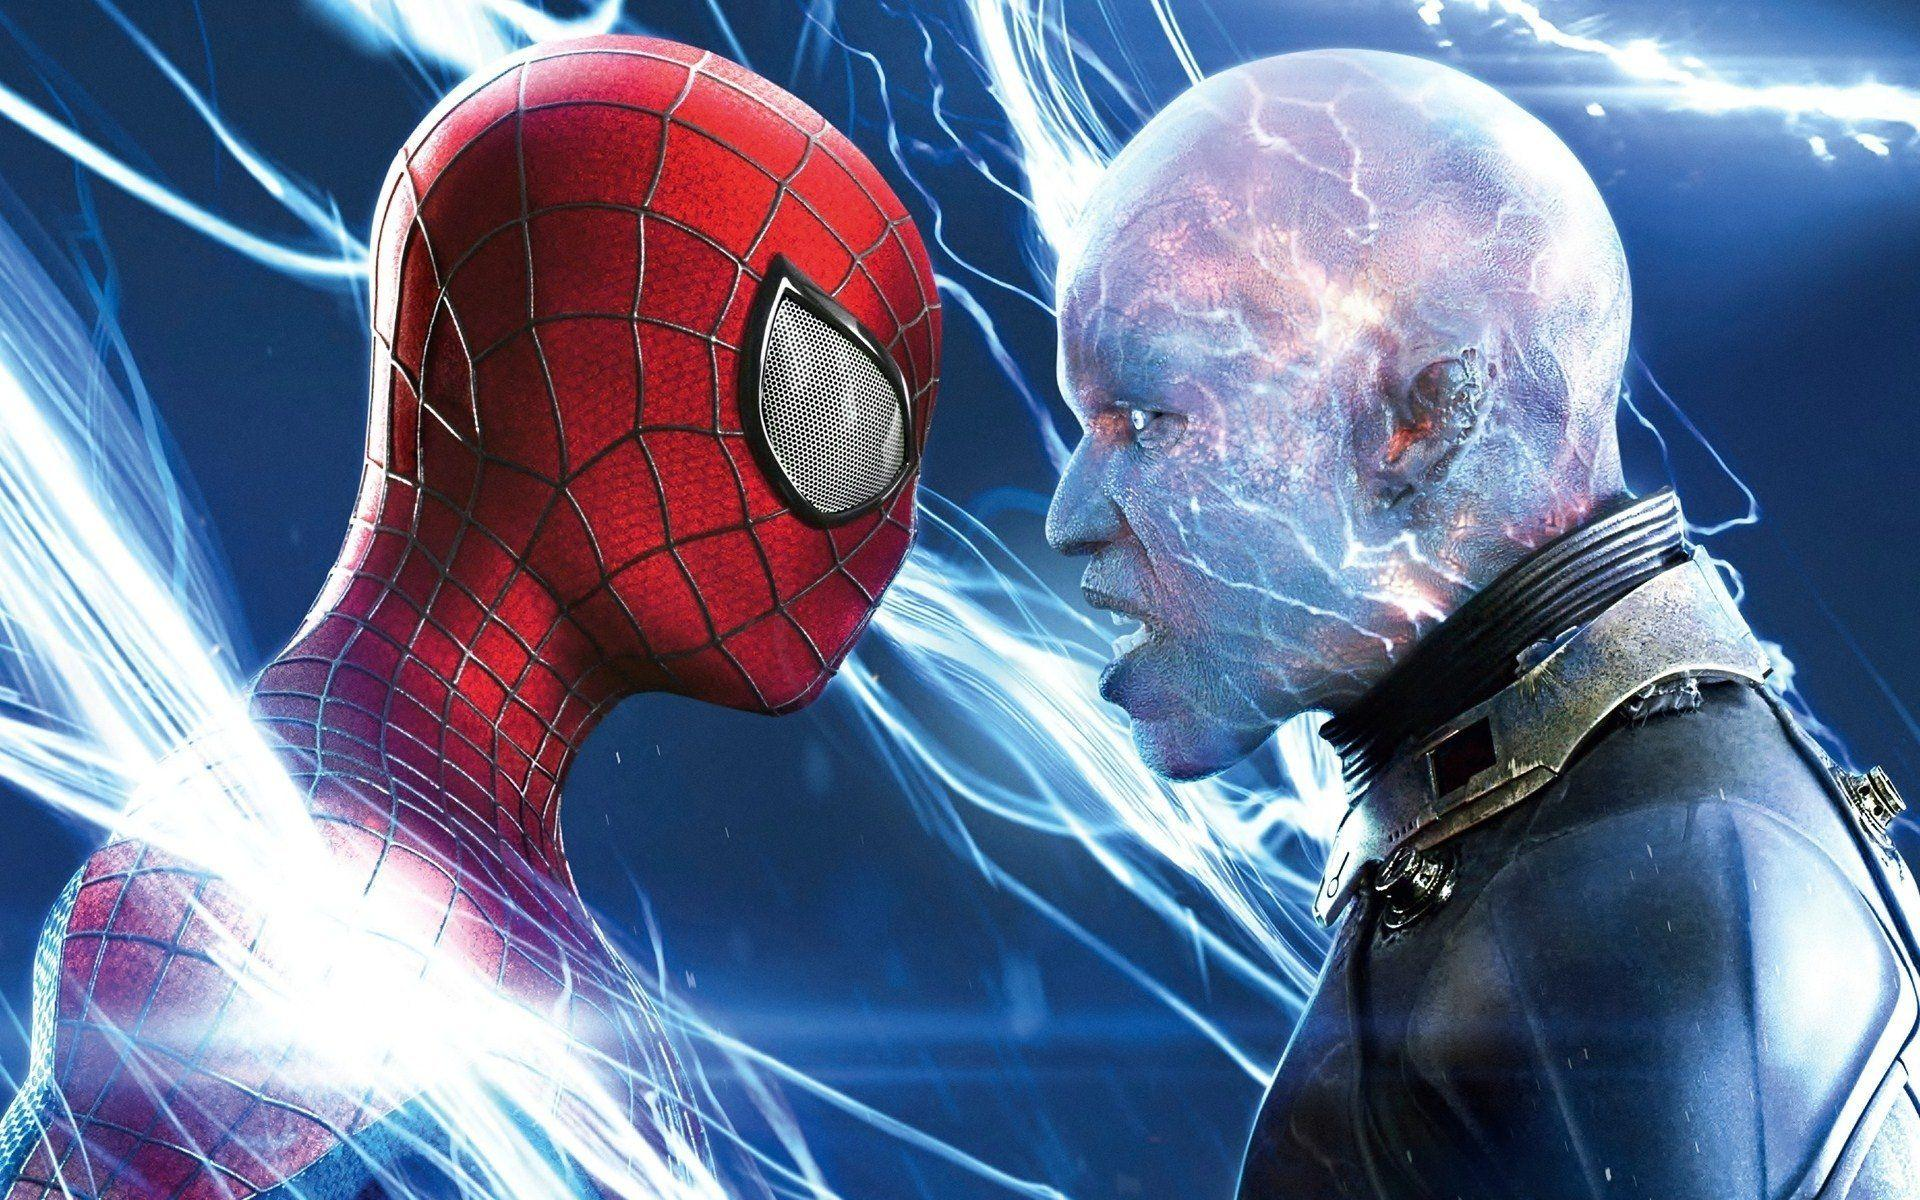 44 The Amazing Spider-Man 2 HD Wallpapers | Backgrounds ...